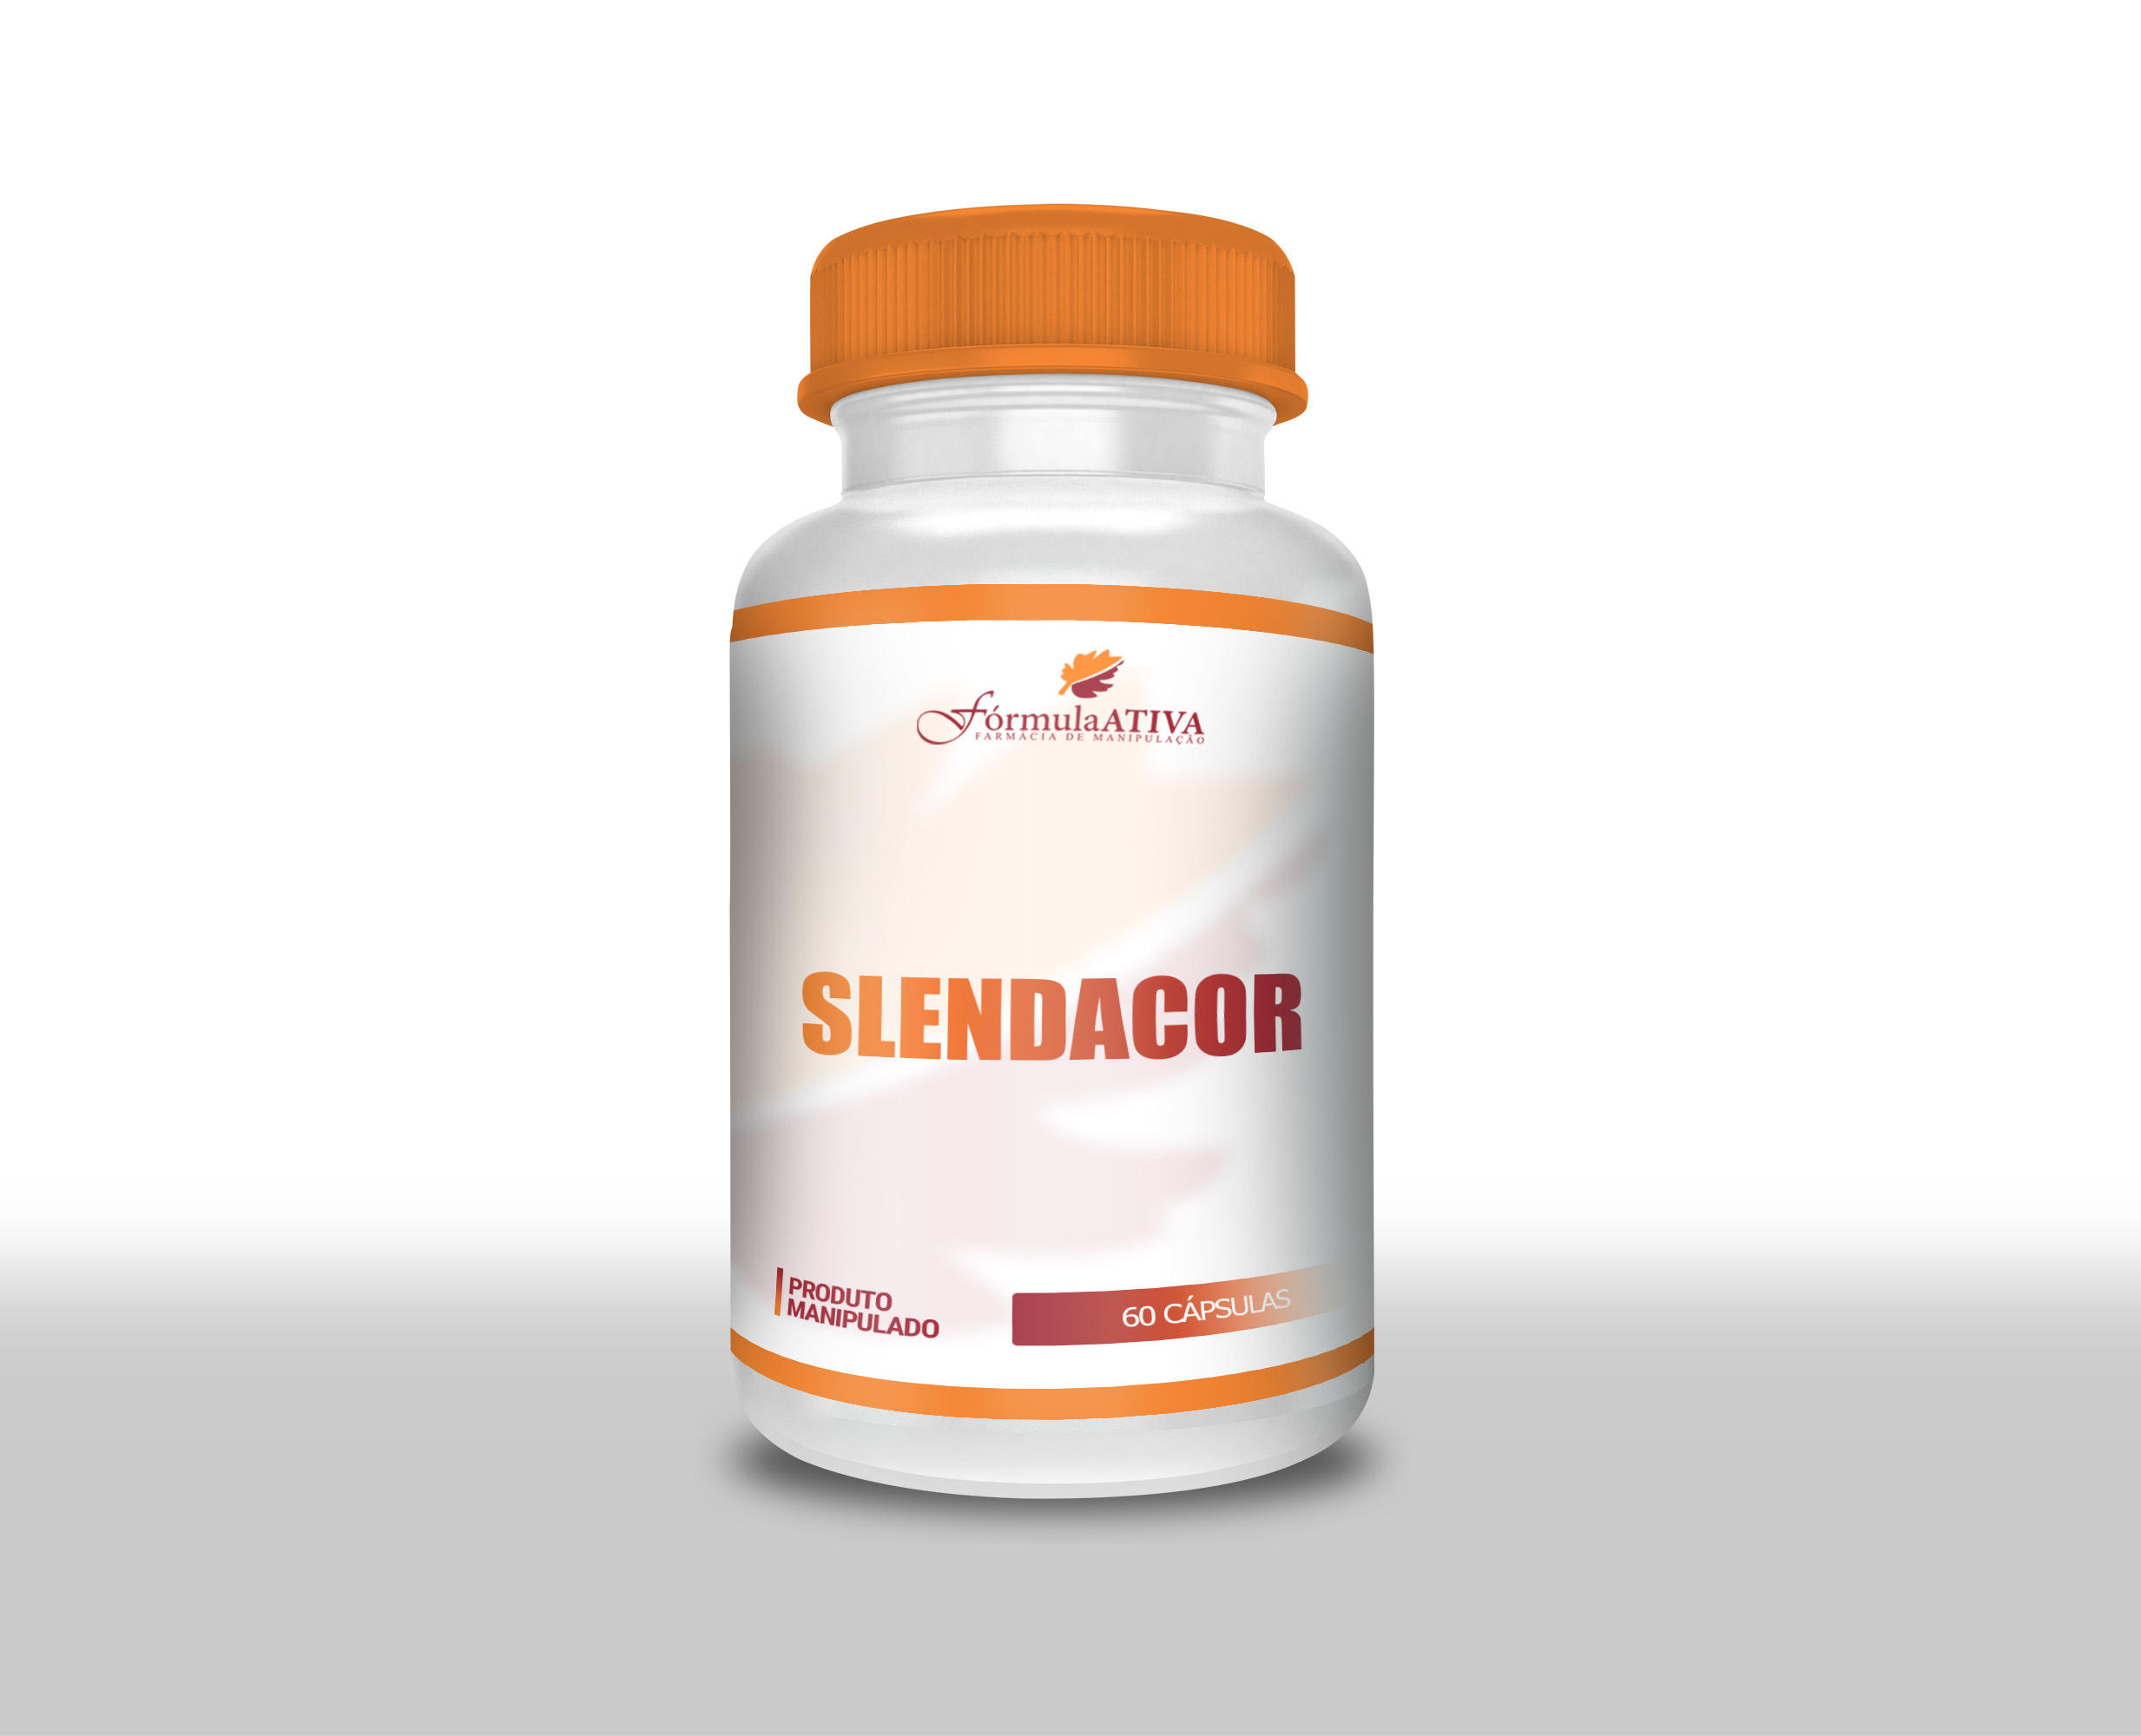 Slendacor (450mg - 60 doses)